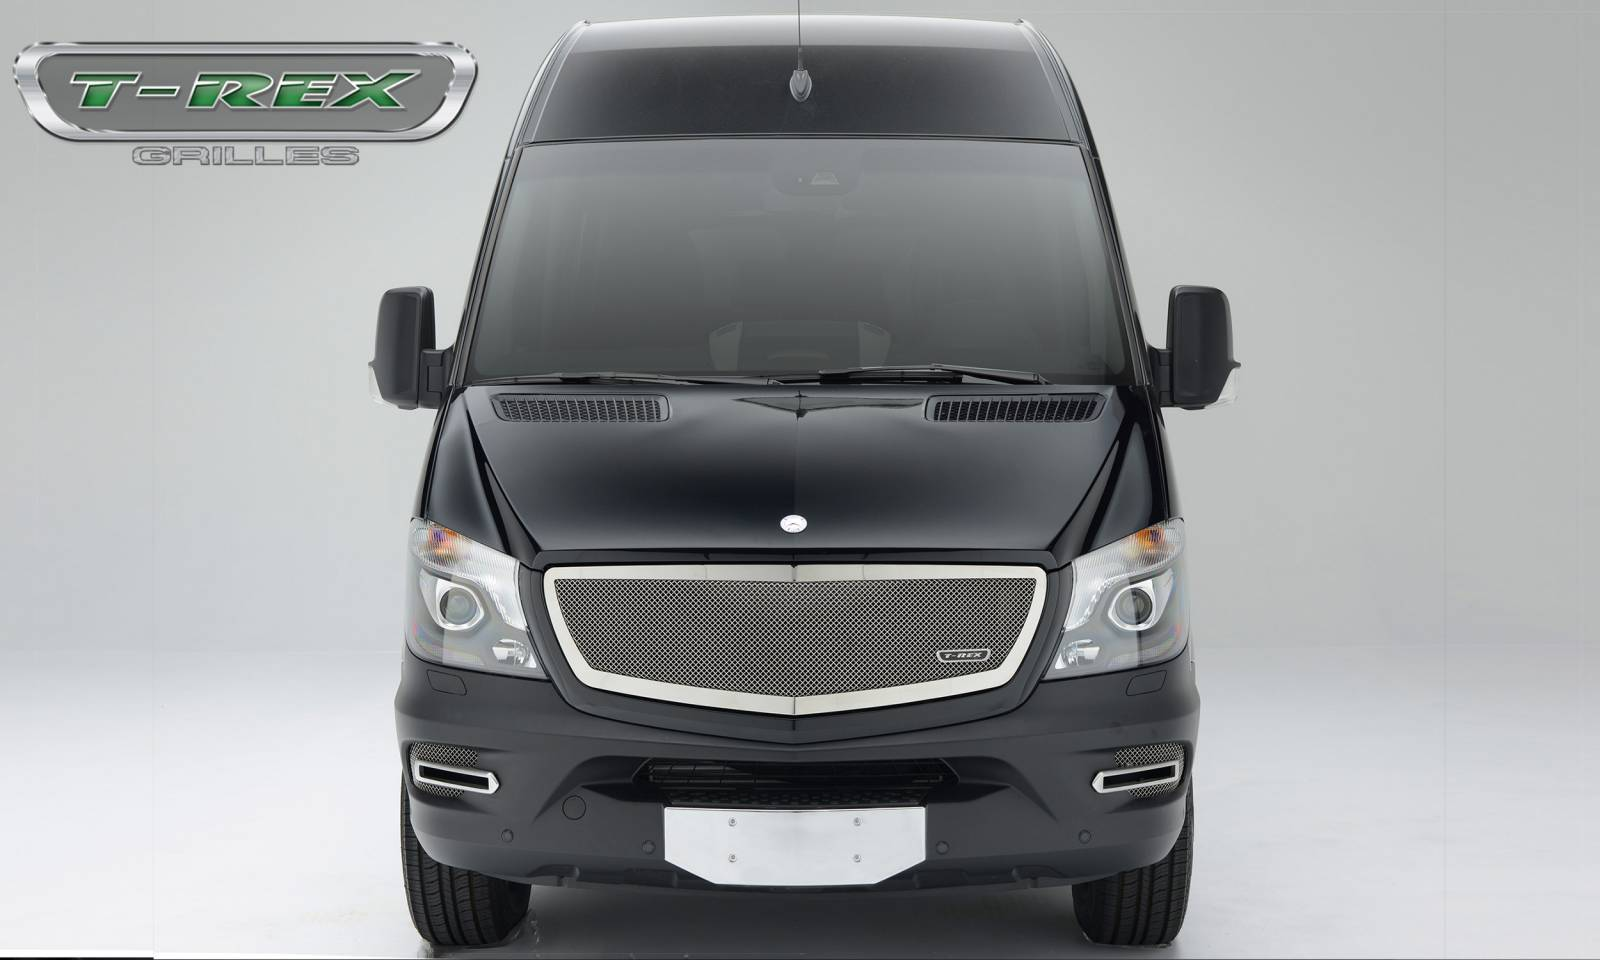 T-REX Mercedes Sprinter 2014-2017 Mercedes Benz Sprinter Van, Upper Class, Formed Mesh Grille, Main, Replacement, Chromed Stainless Steel - Pt # 56850